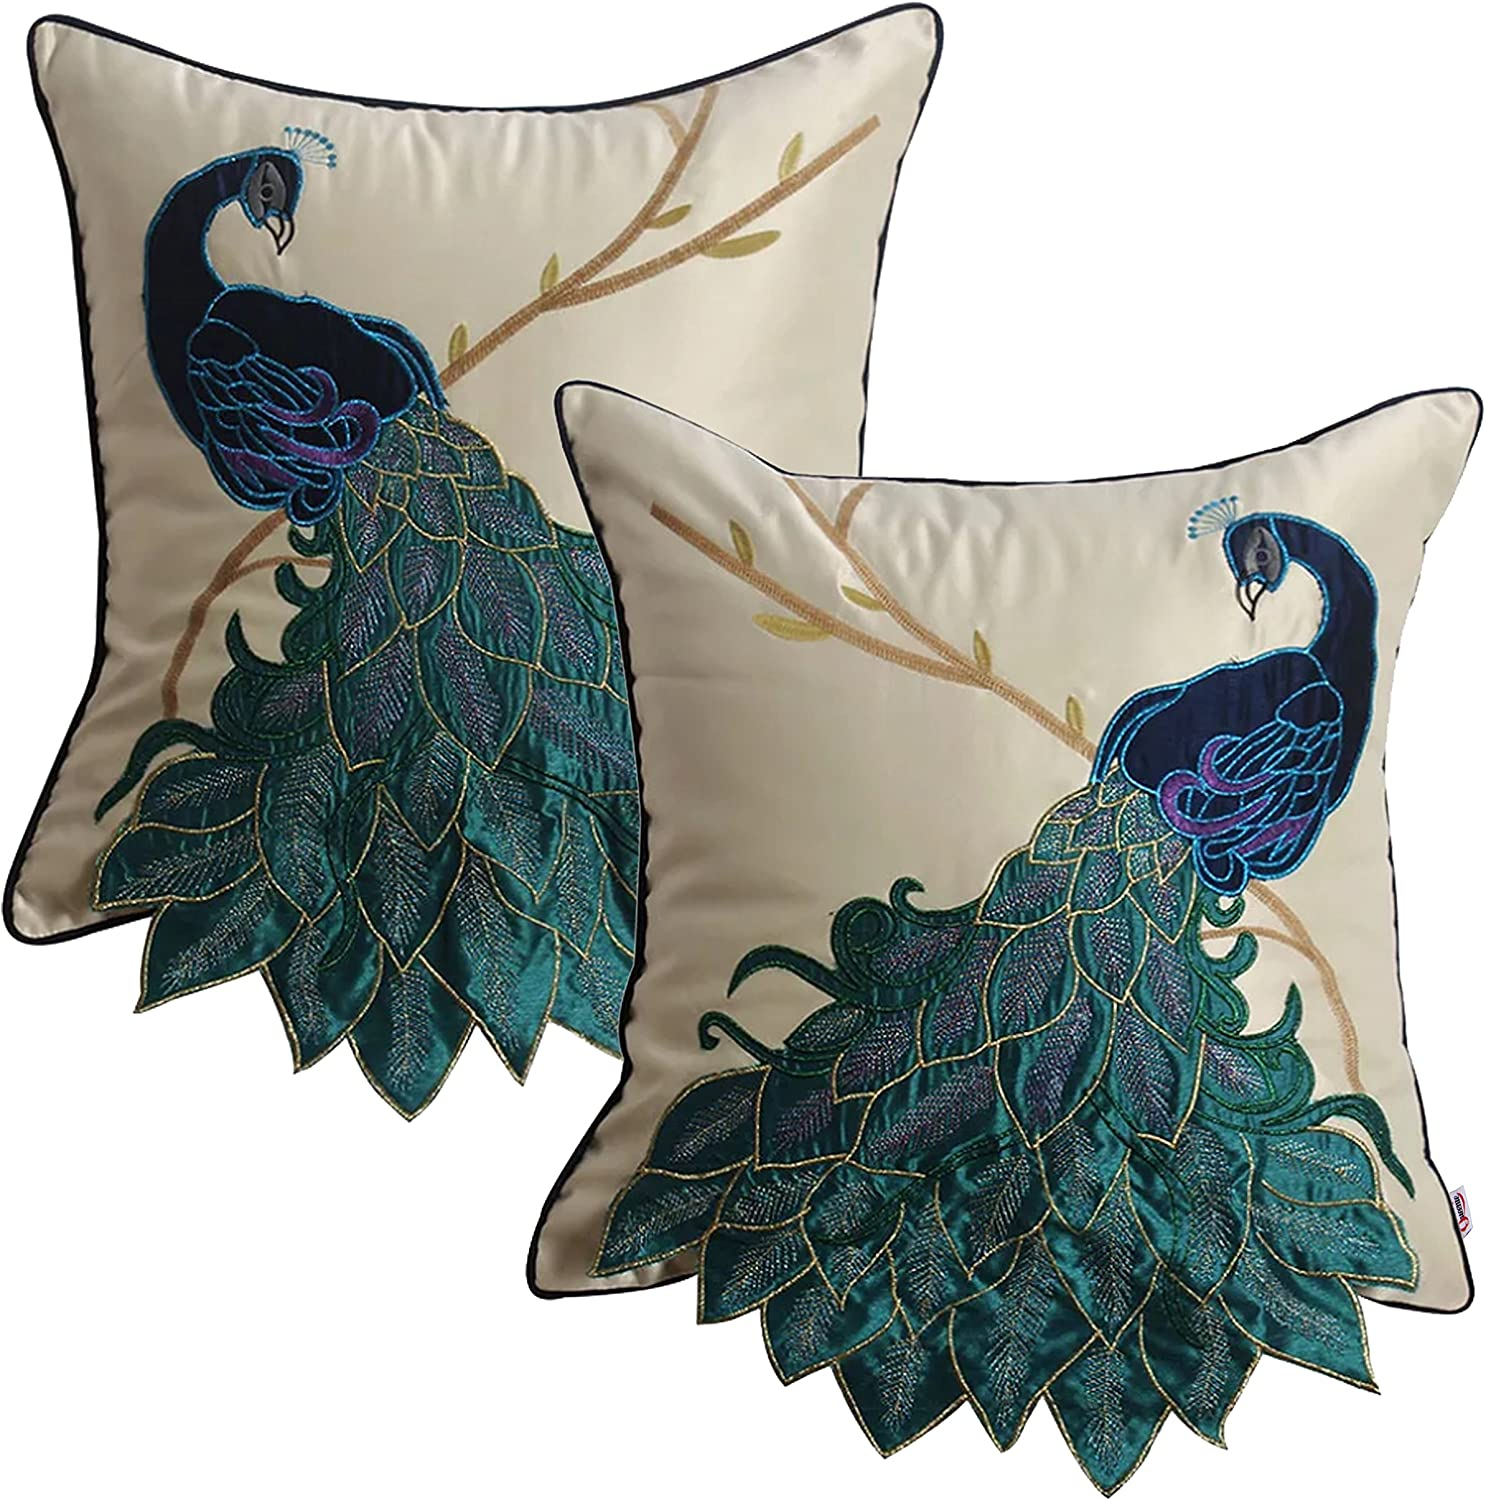 Queenie - 2 Pc Peacock/parrot Decorative Pillowcase Cushion Cover Throw Pillow Case 16 X 16 Inch 40 X 40 Cm (A Pair Of Peacock With Embroidery - Square)